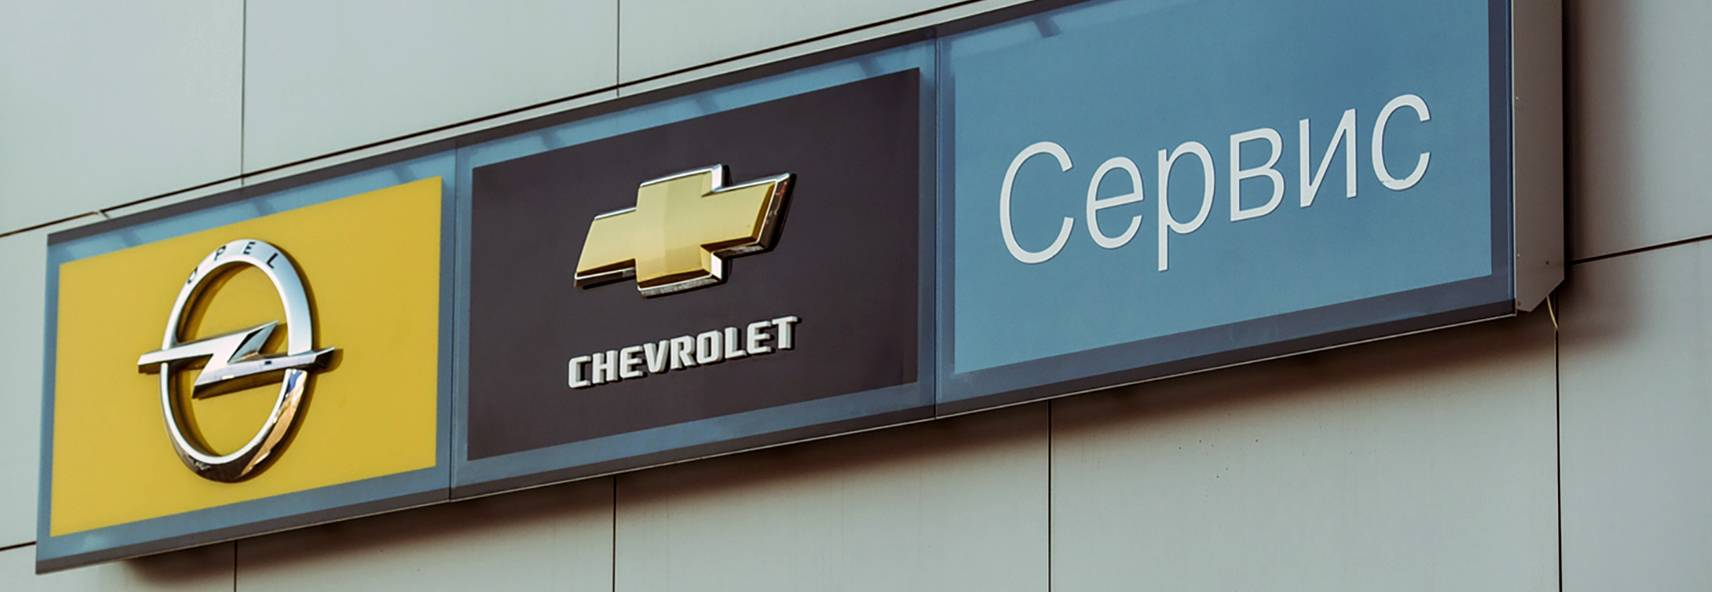 Chevrolet, Яблоновский